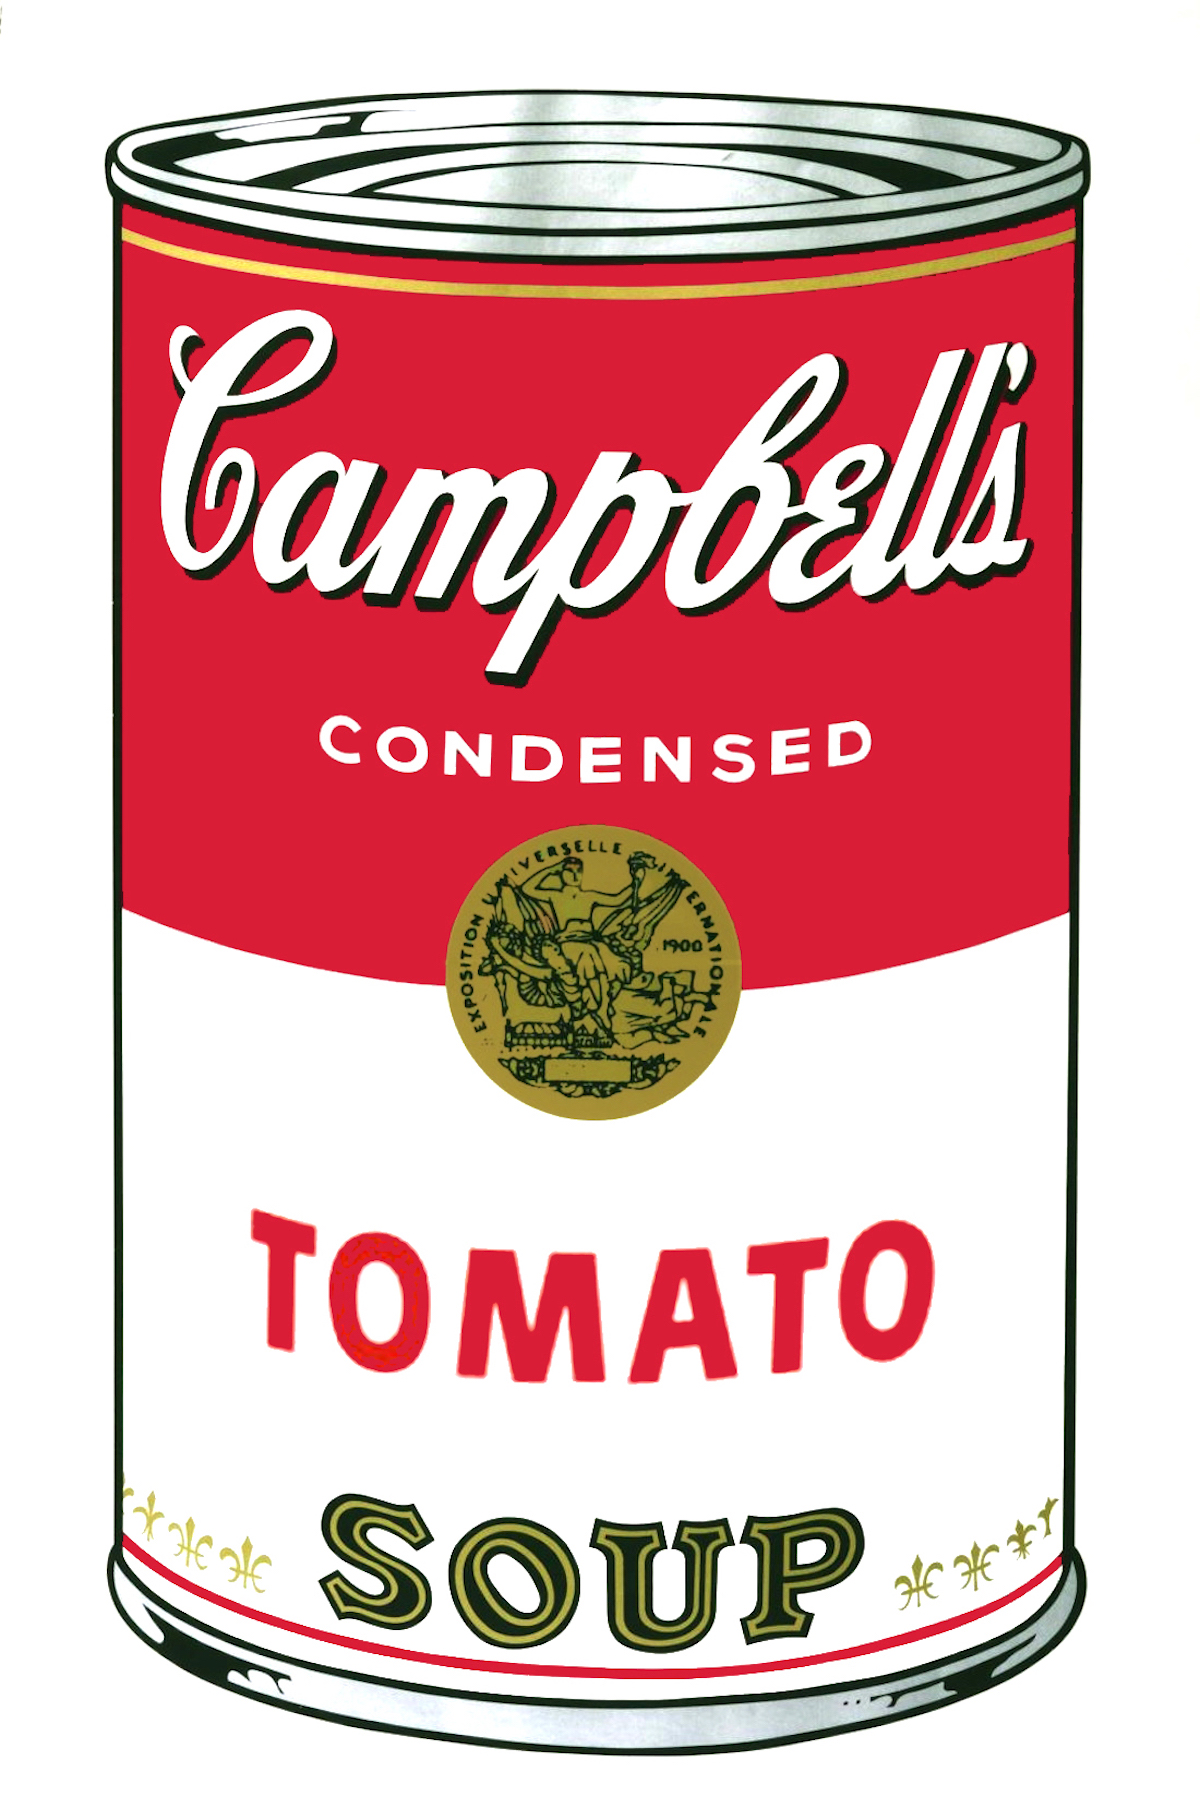 Campbell's Soup I: Tomato (fs Ii.46) by Andy Warhol